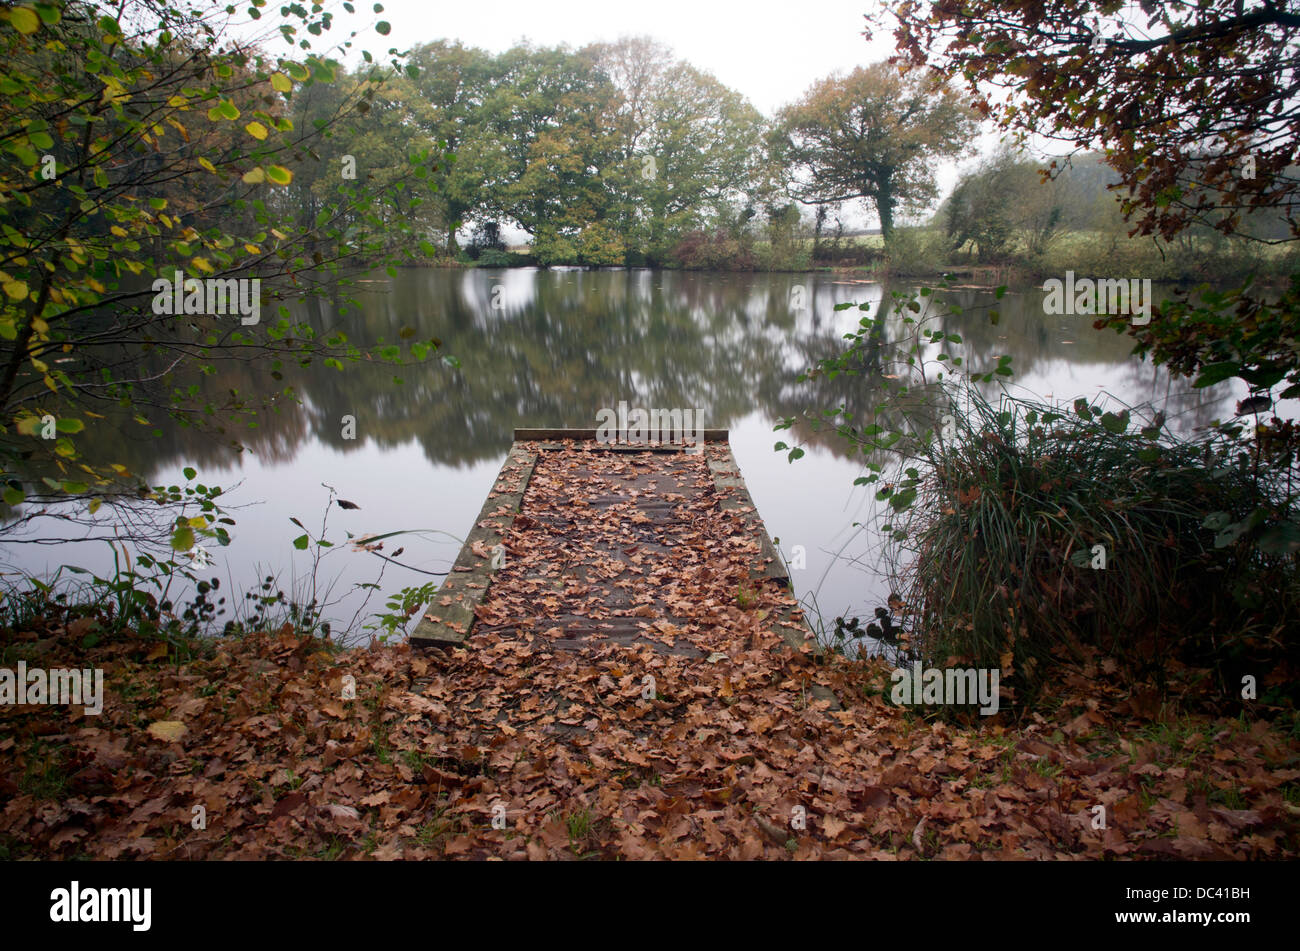 A fishing lake in Burgess Hill, West Sussex. Stock Photo